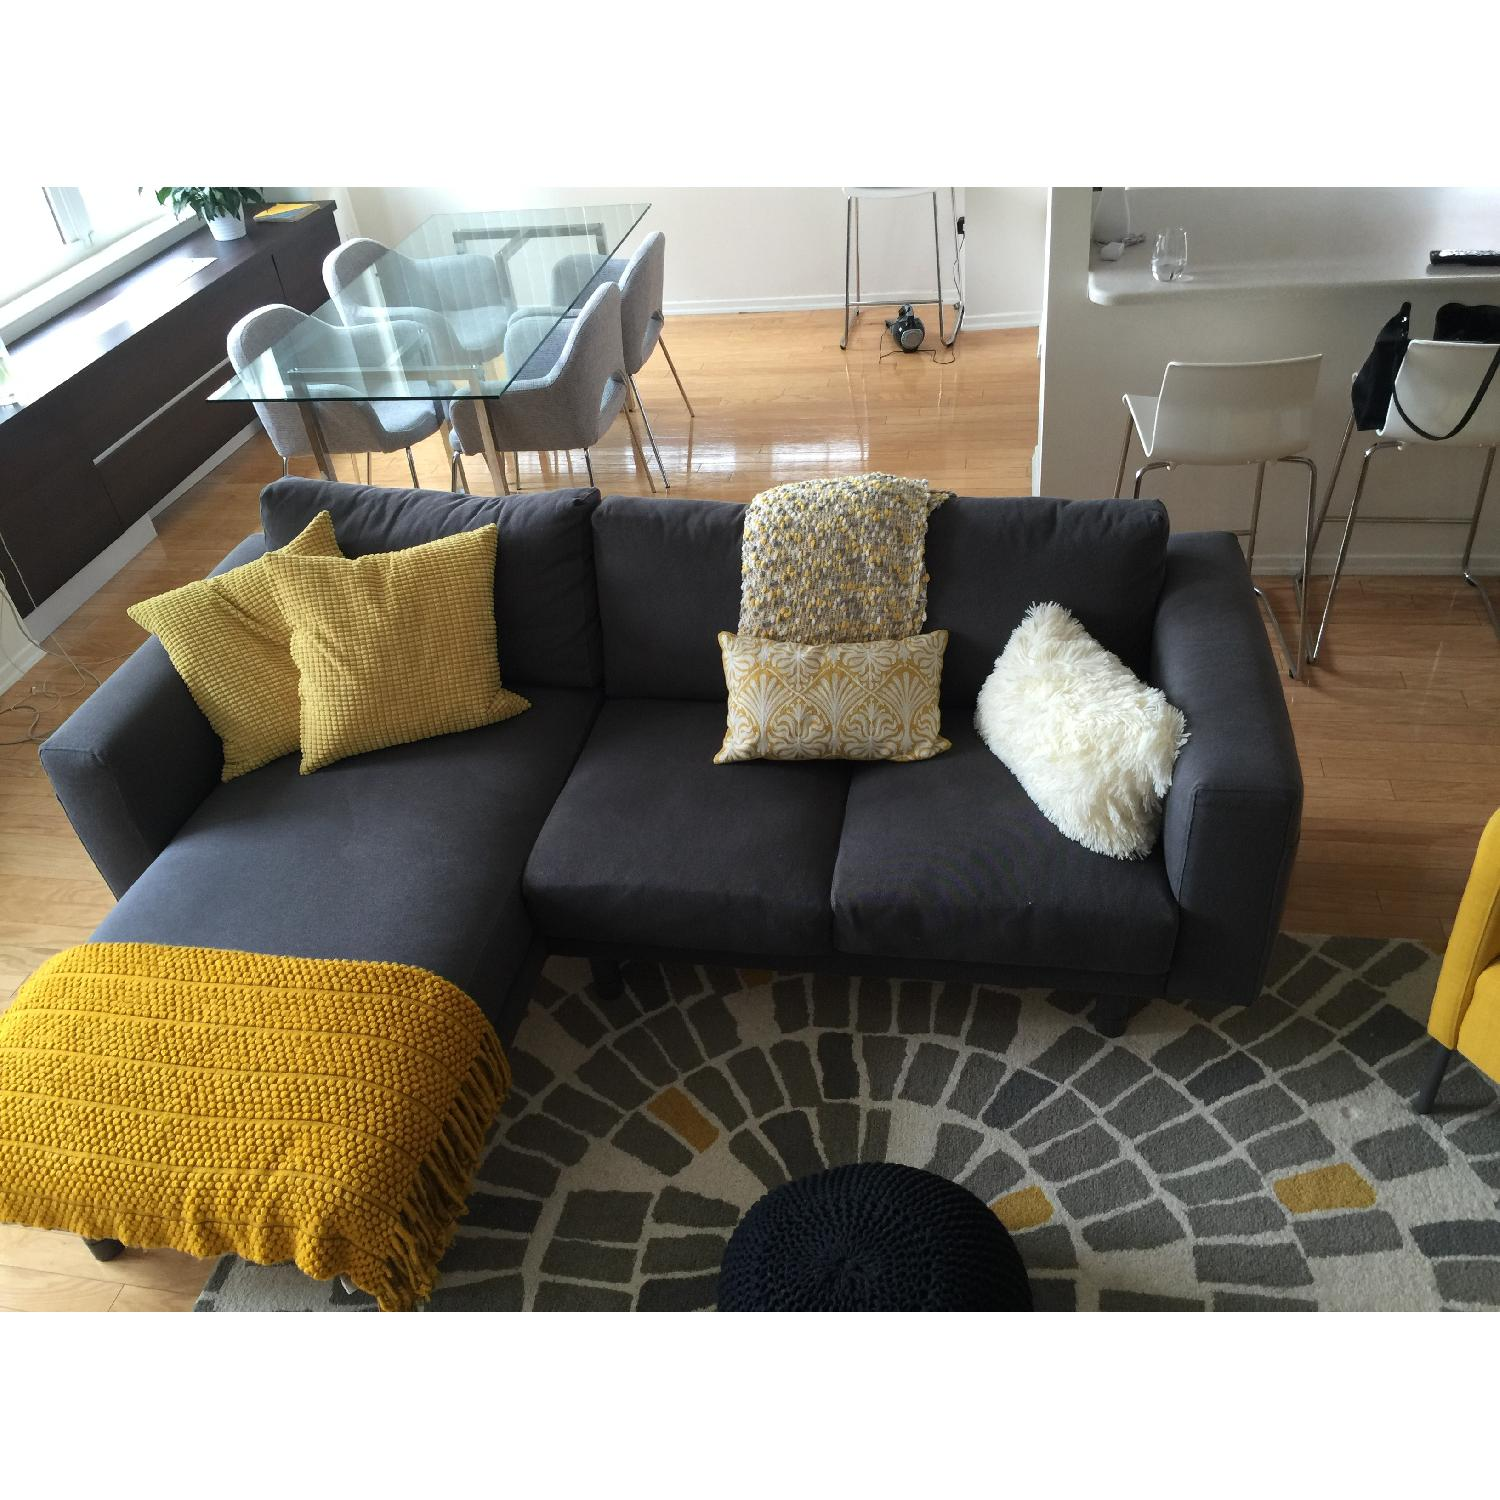 Ikea Sectional Couch - image-5